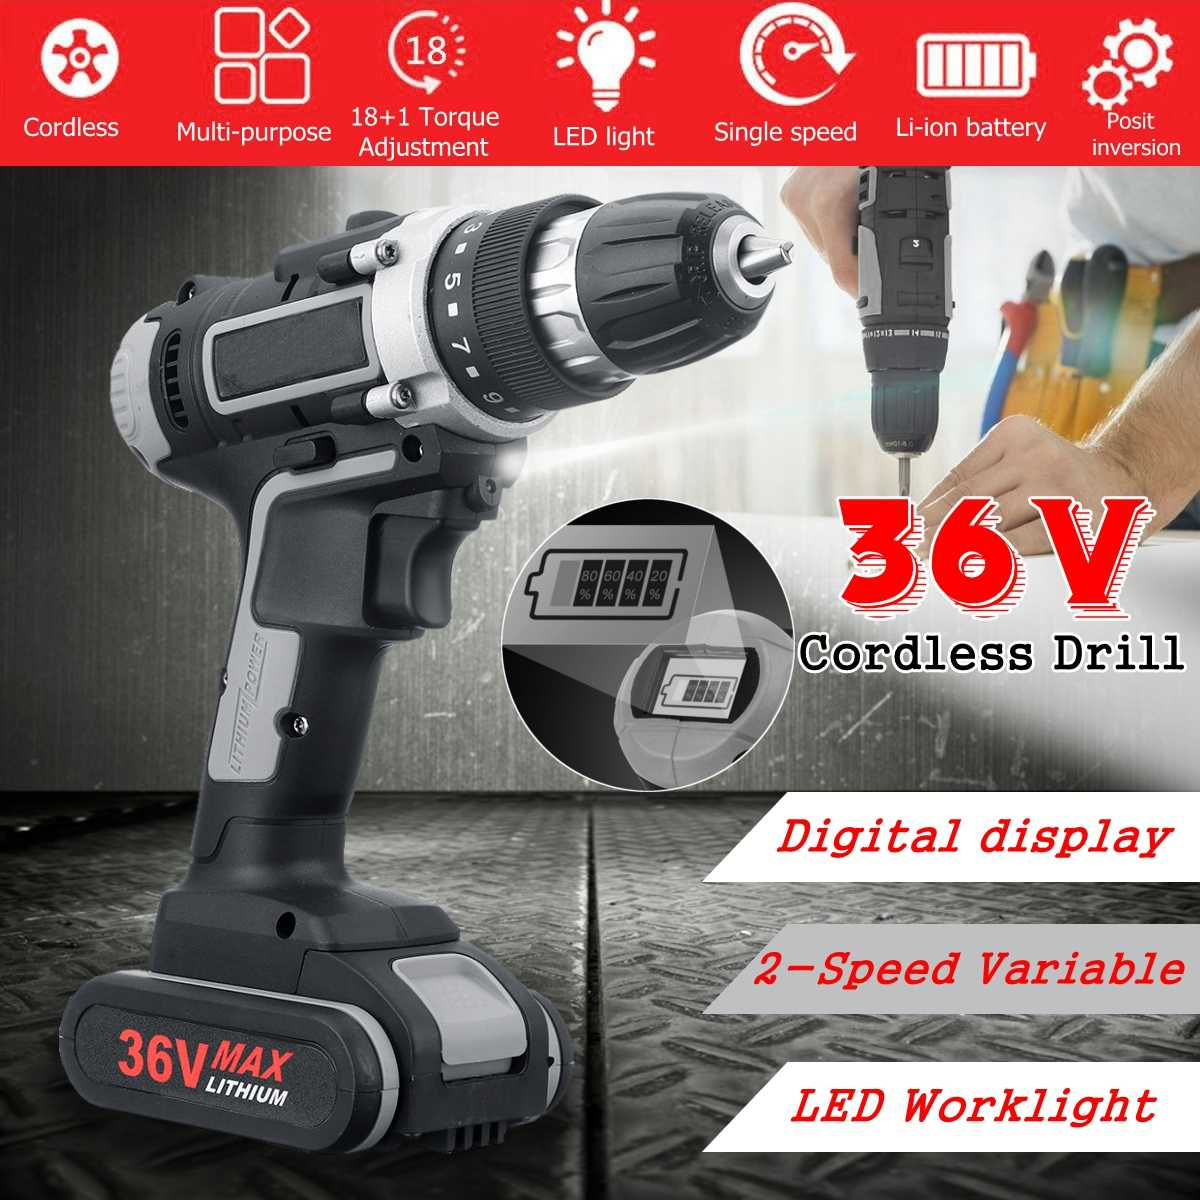 36V Cordless Electric Drill with Digital display Double-Speed Impact Drill screwdriver power tools with 1/2 Battery36V Cordless Electric Drill with Digital display Double-Speed Impact Drill screwdriver power tools with 1/2 Battery